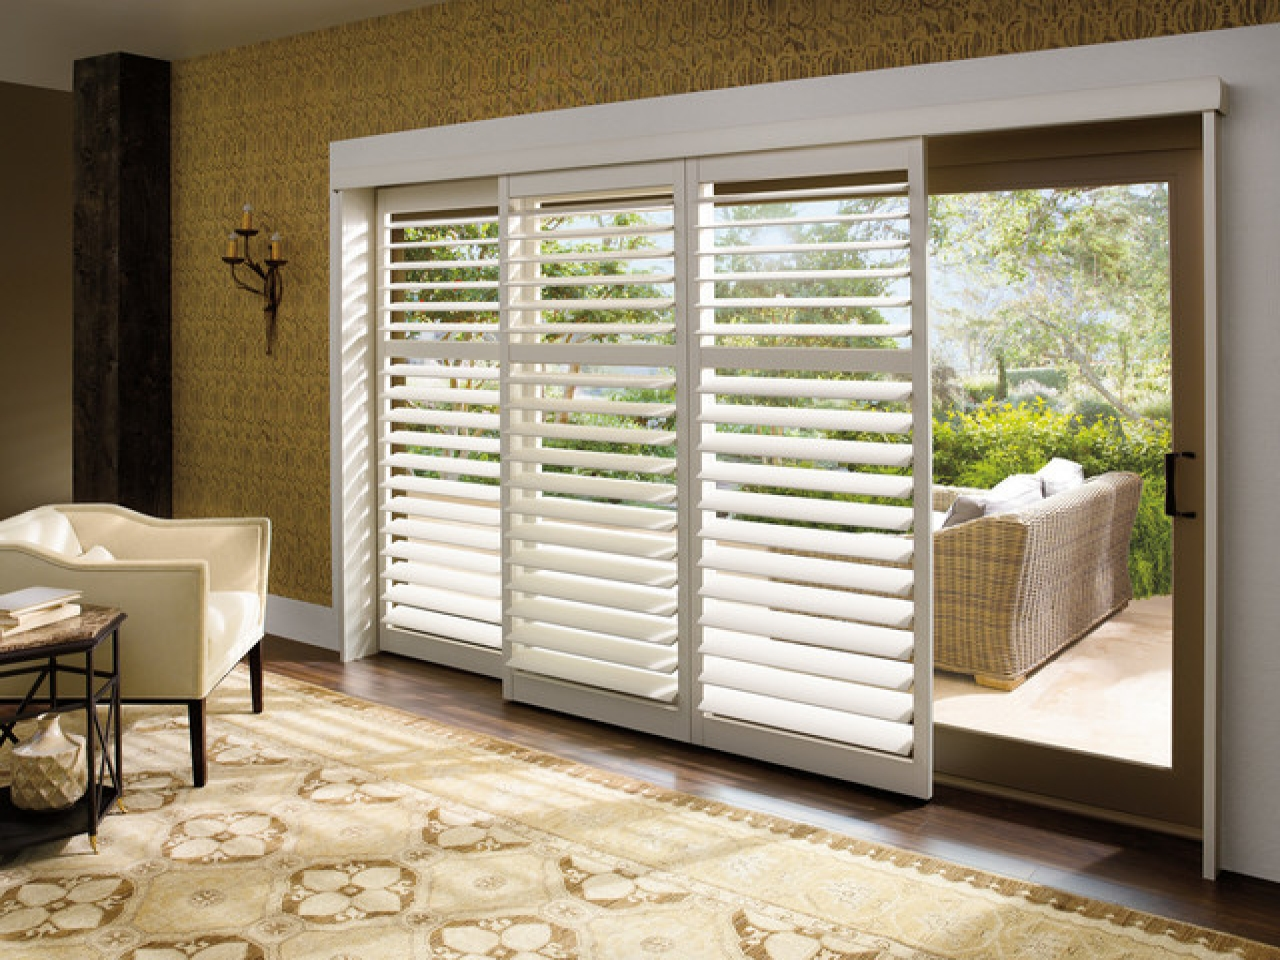 contemporary window treatments for sliding glass doors plantation shutters for sliding glass patio doors SEVXJOJ